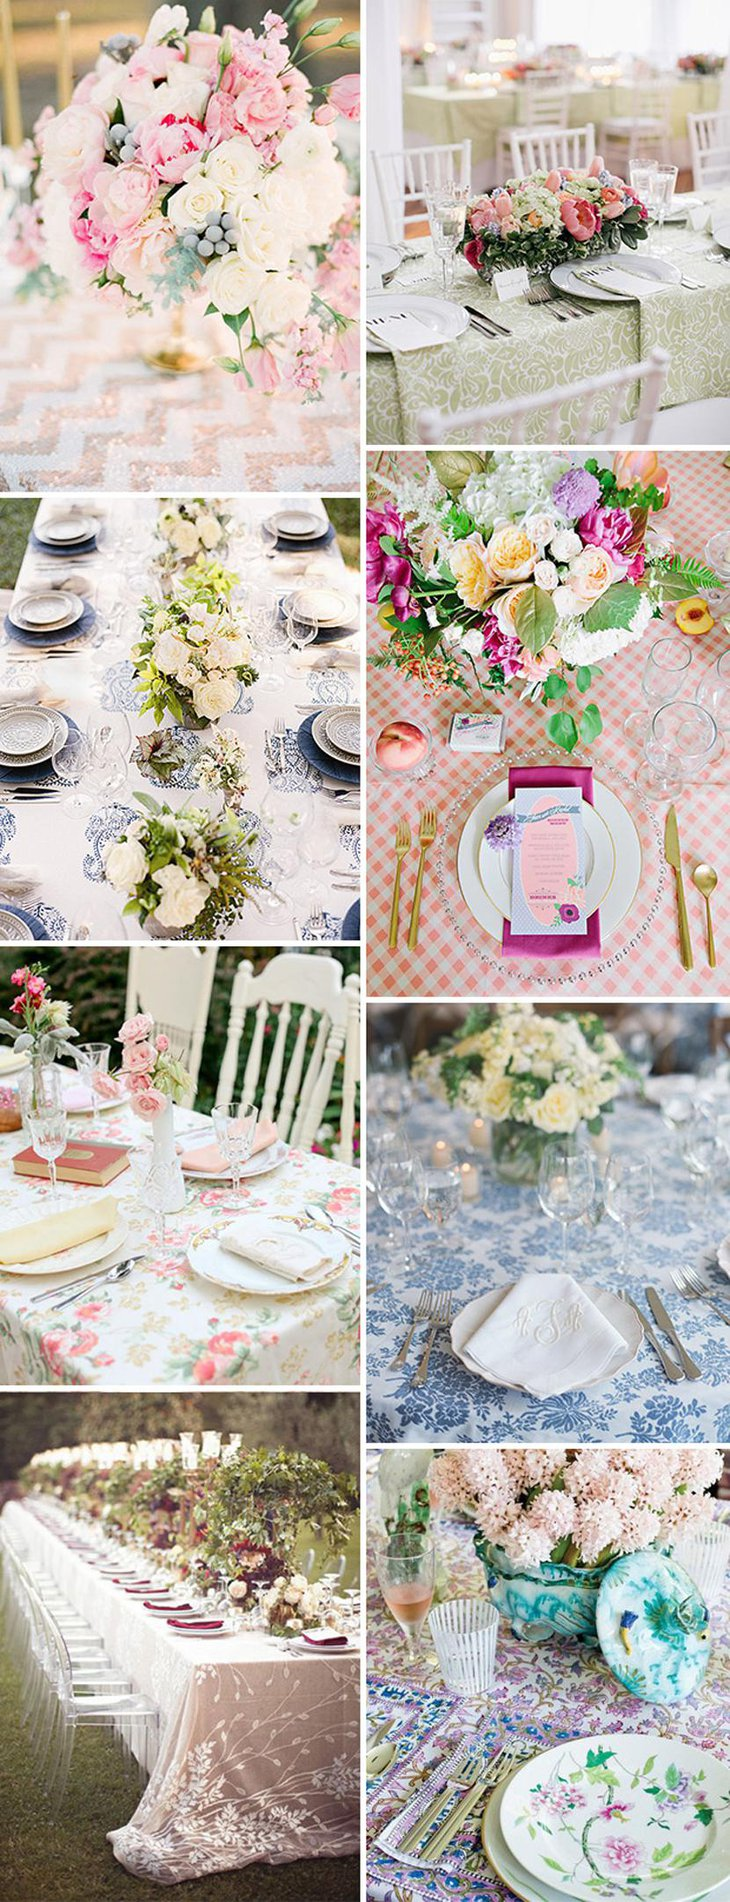 Attractive Patterned Table Linens for Weddings